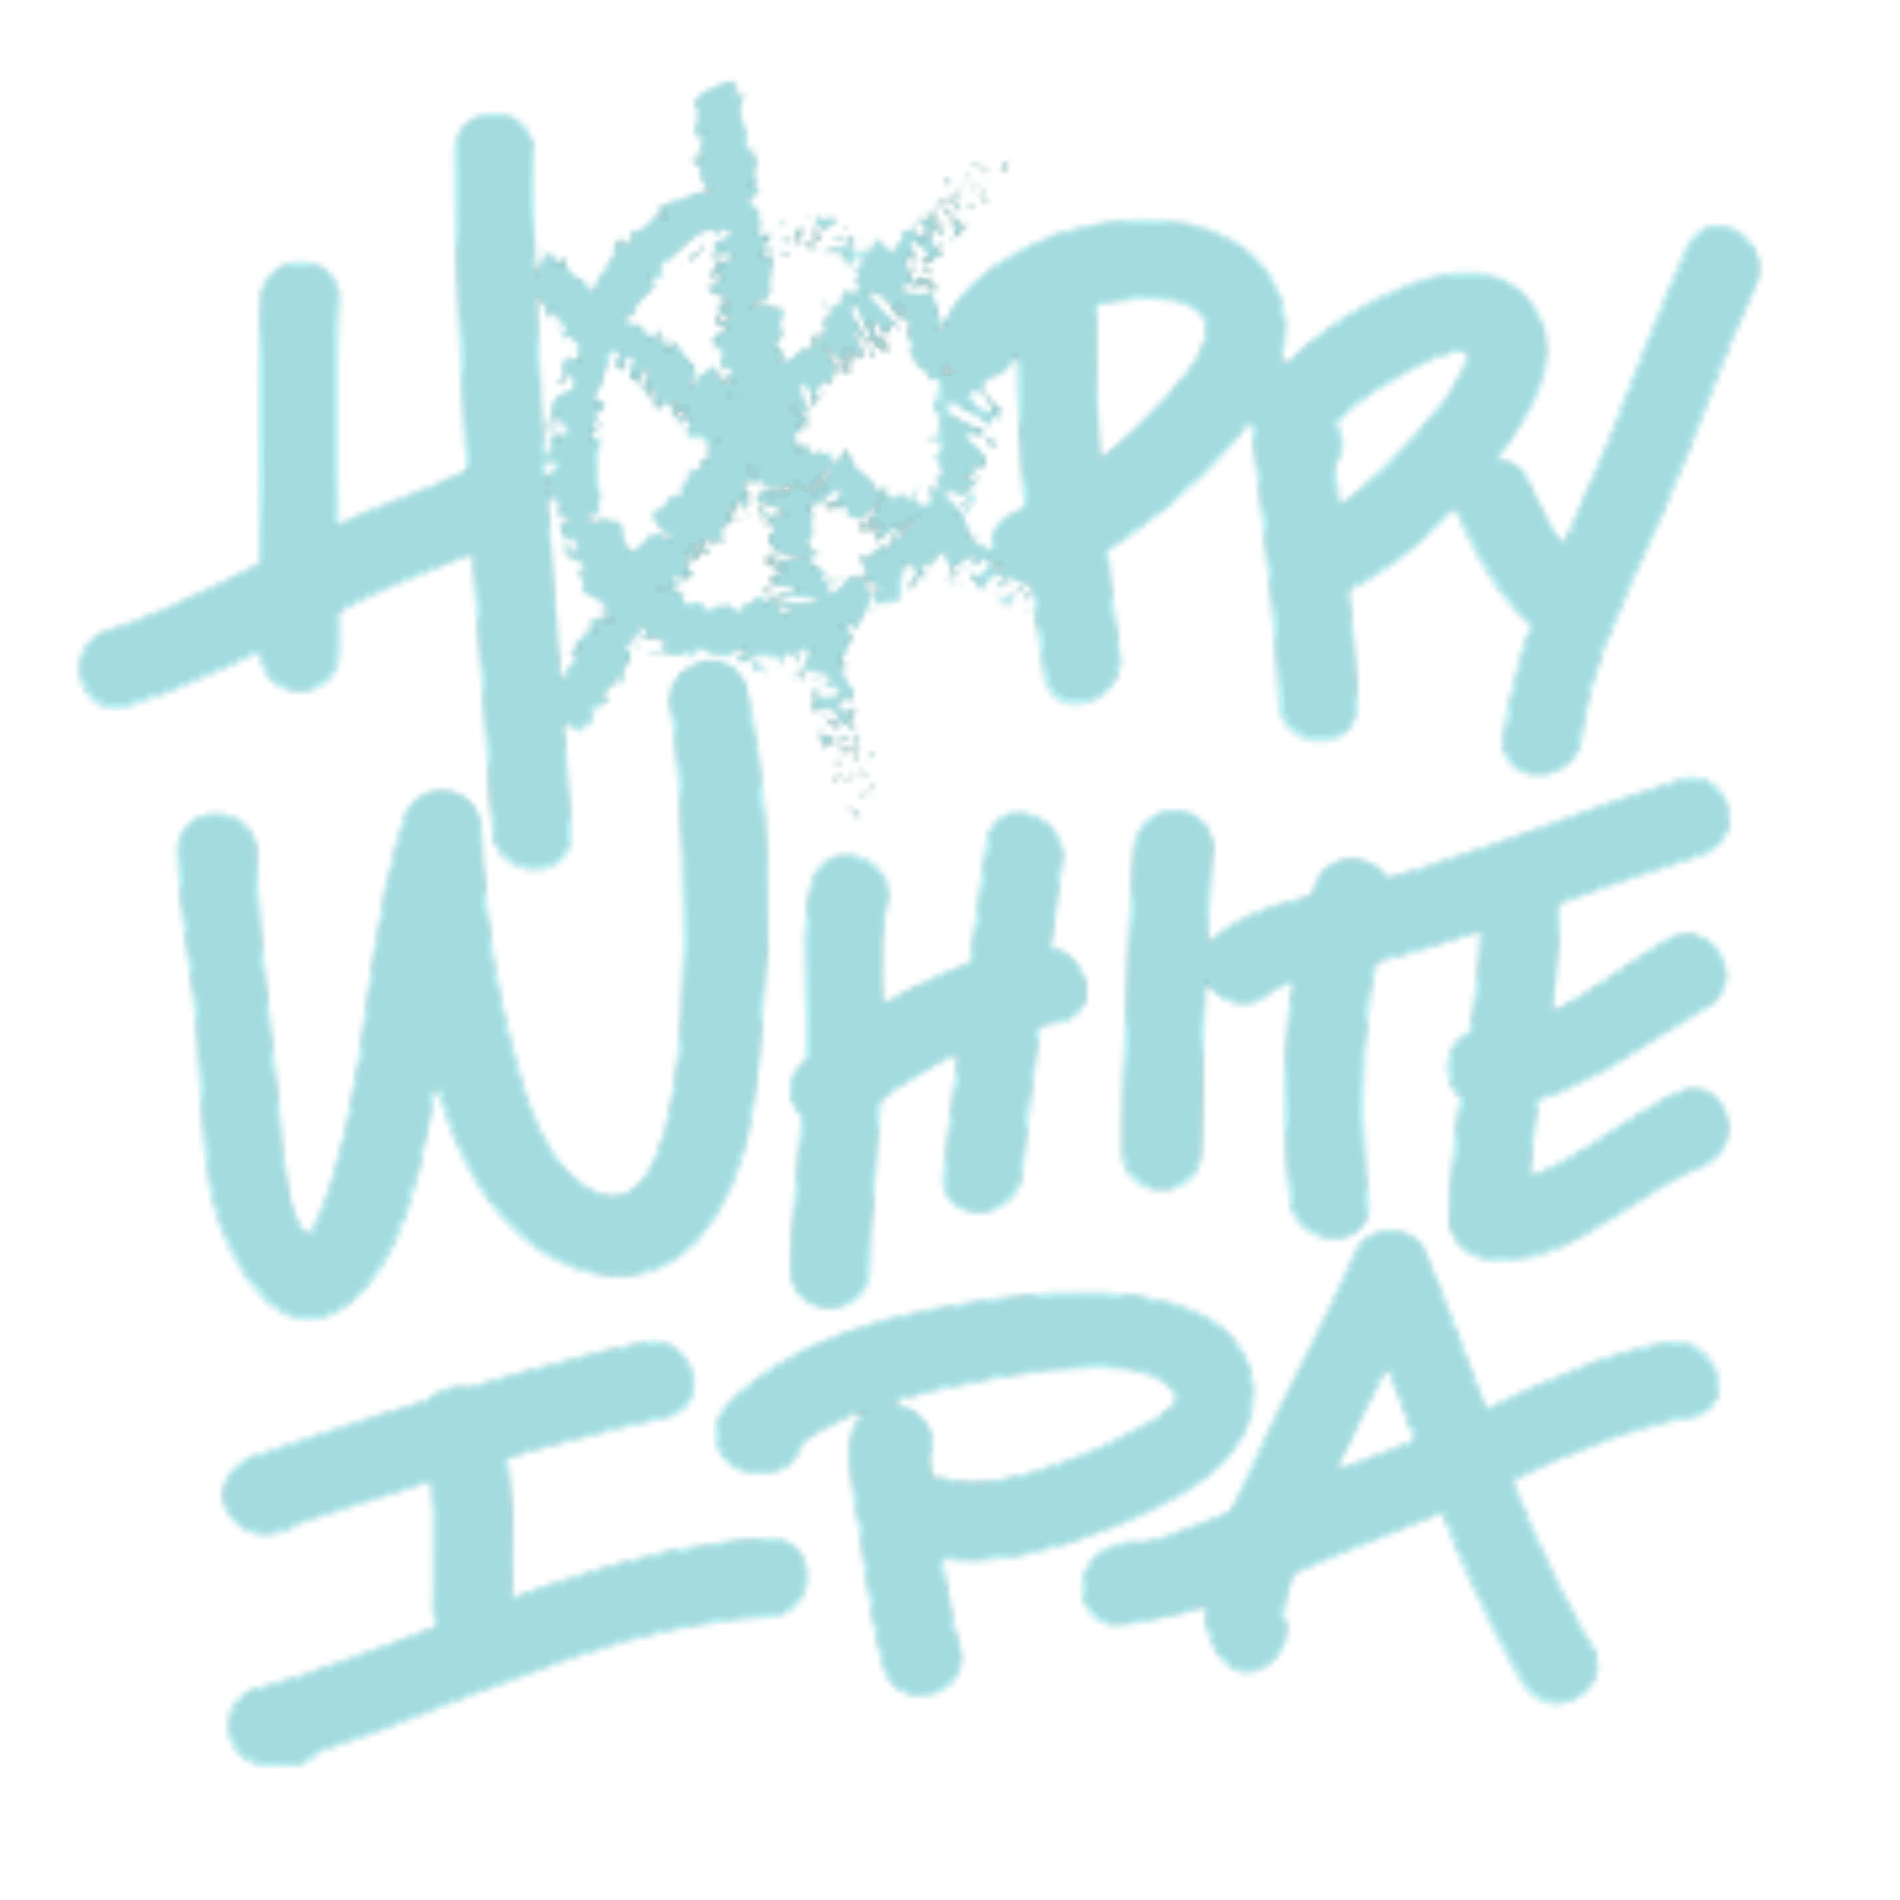 Hop For fun - Hoppy White Ipa